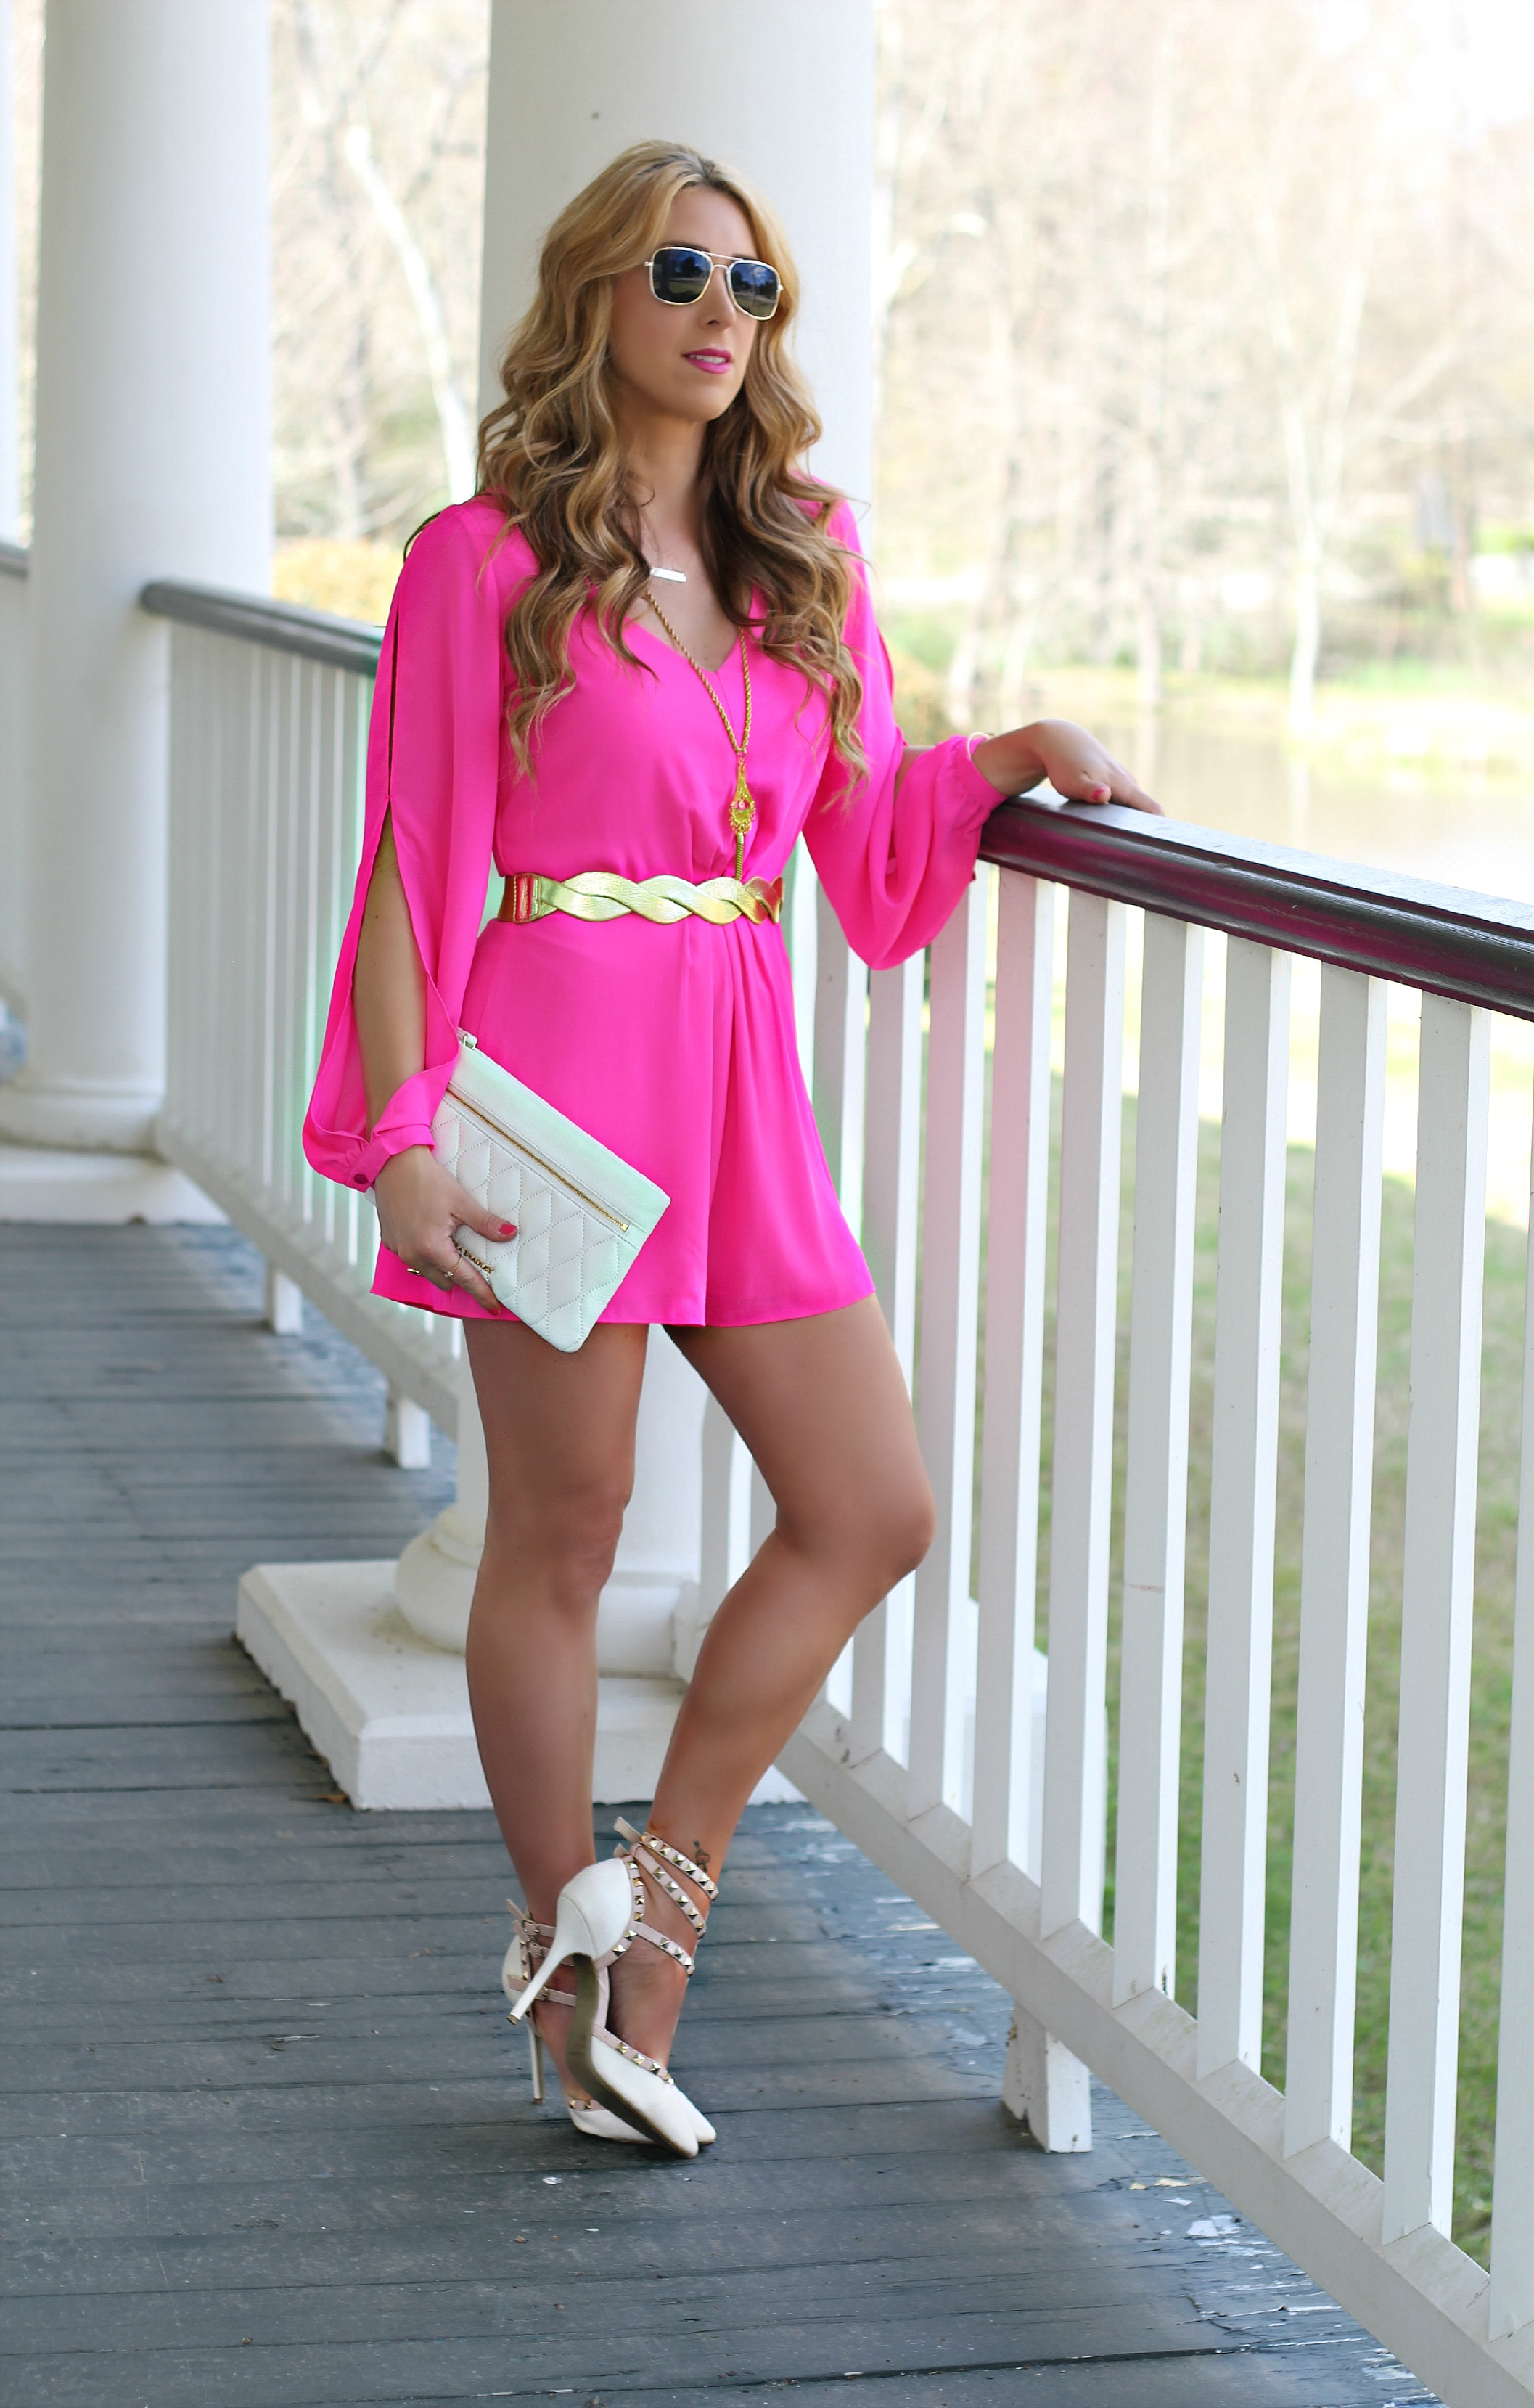 pink romper 25 Cute Women Romper for Spring Summer Collection 2015/16 25 Cute Women Romper for Spring Summer Collection 2015/16 pink romper